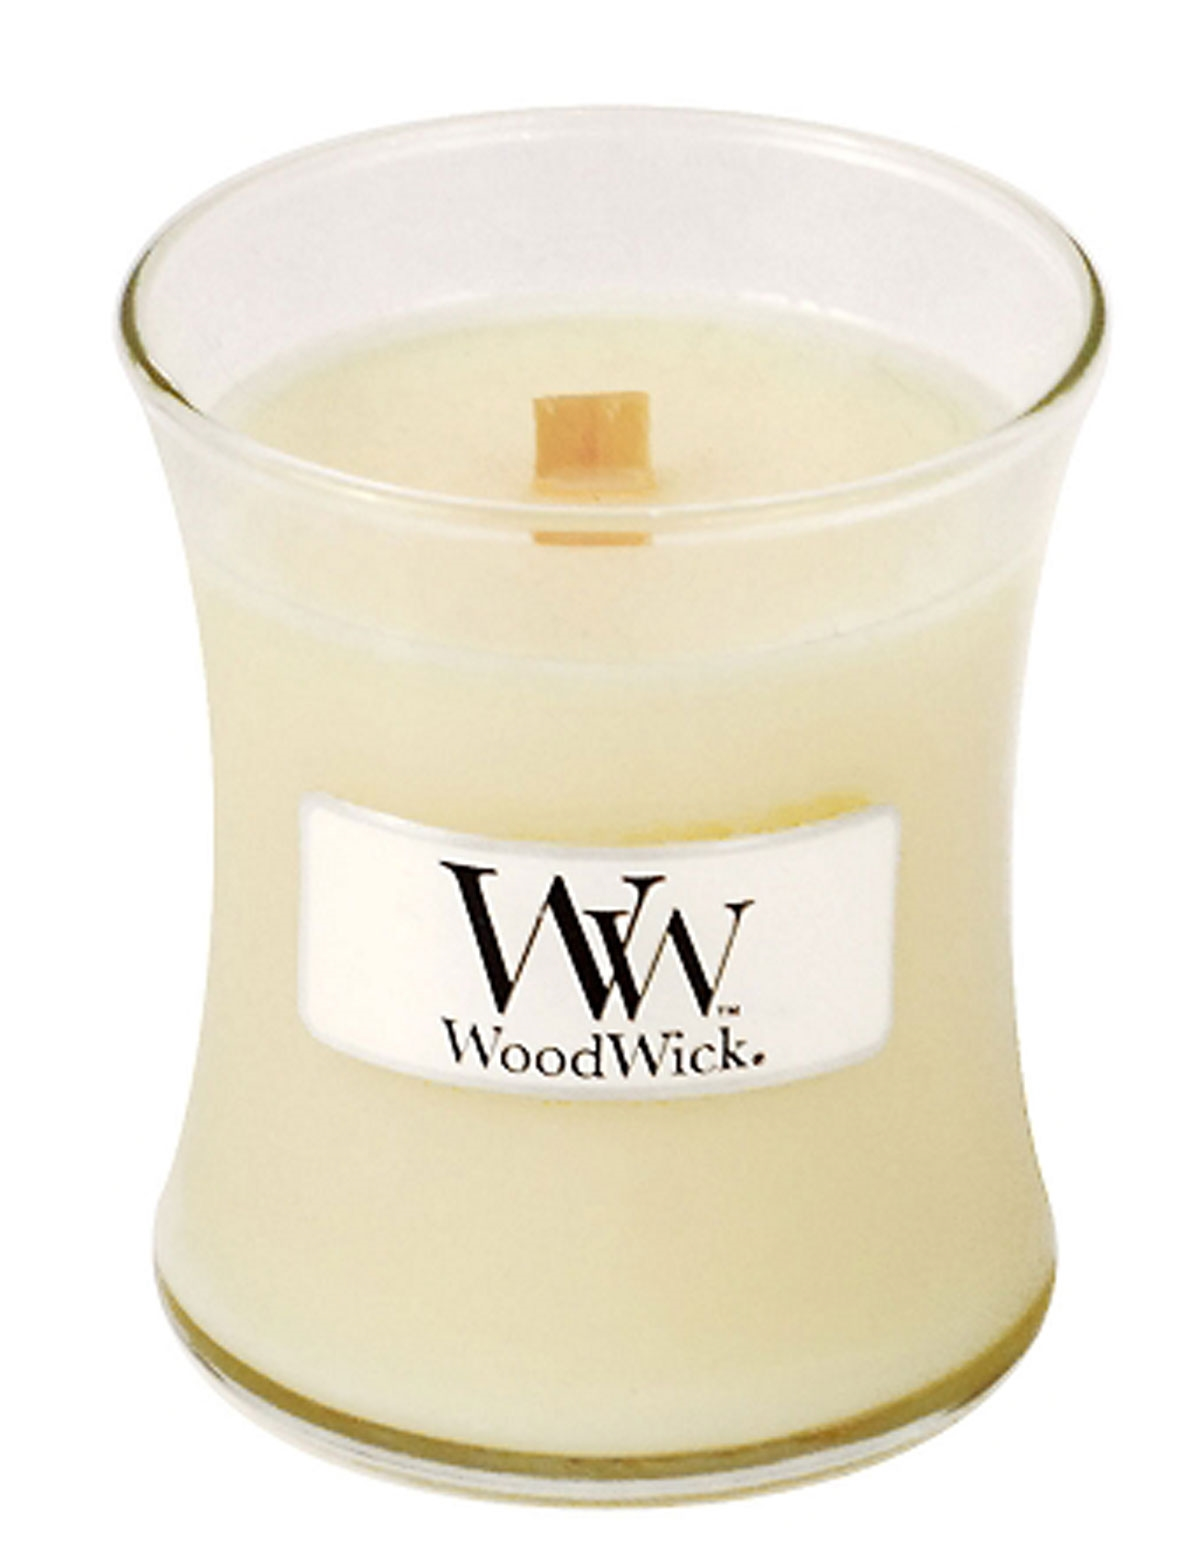 Vanilla Bean Mini Woodwick Candle